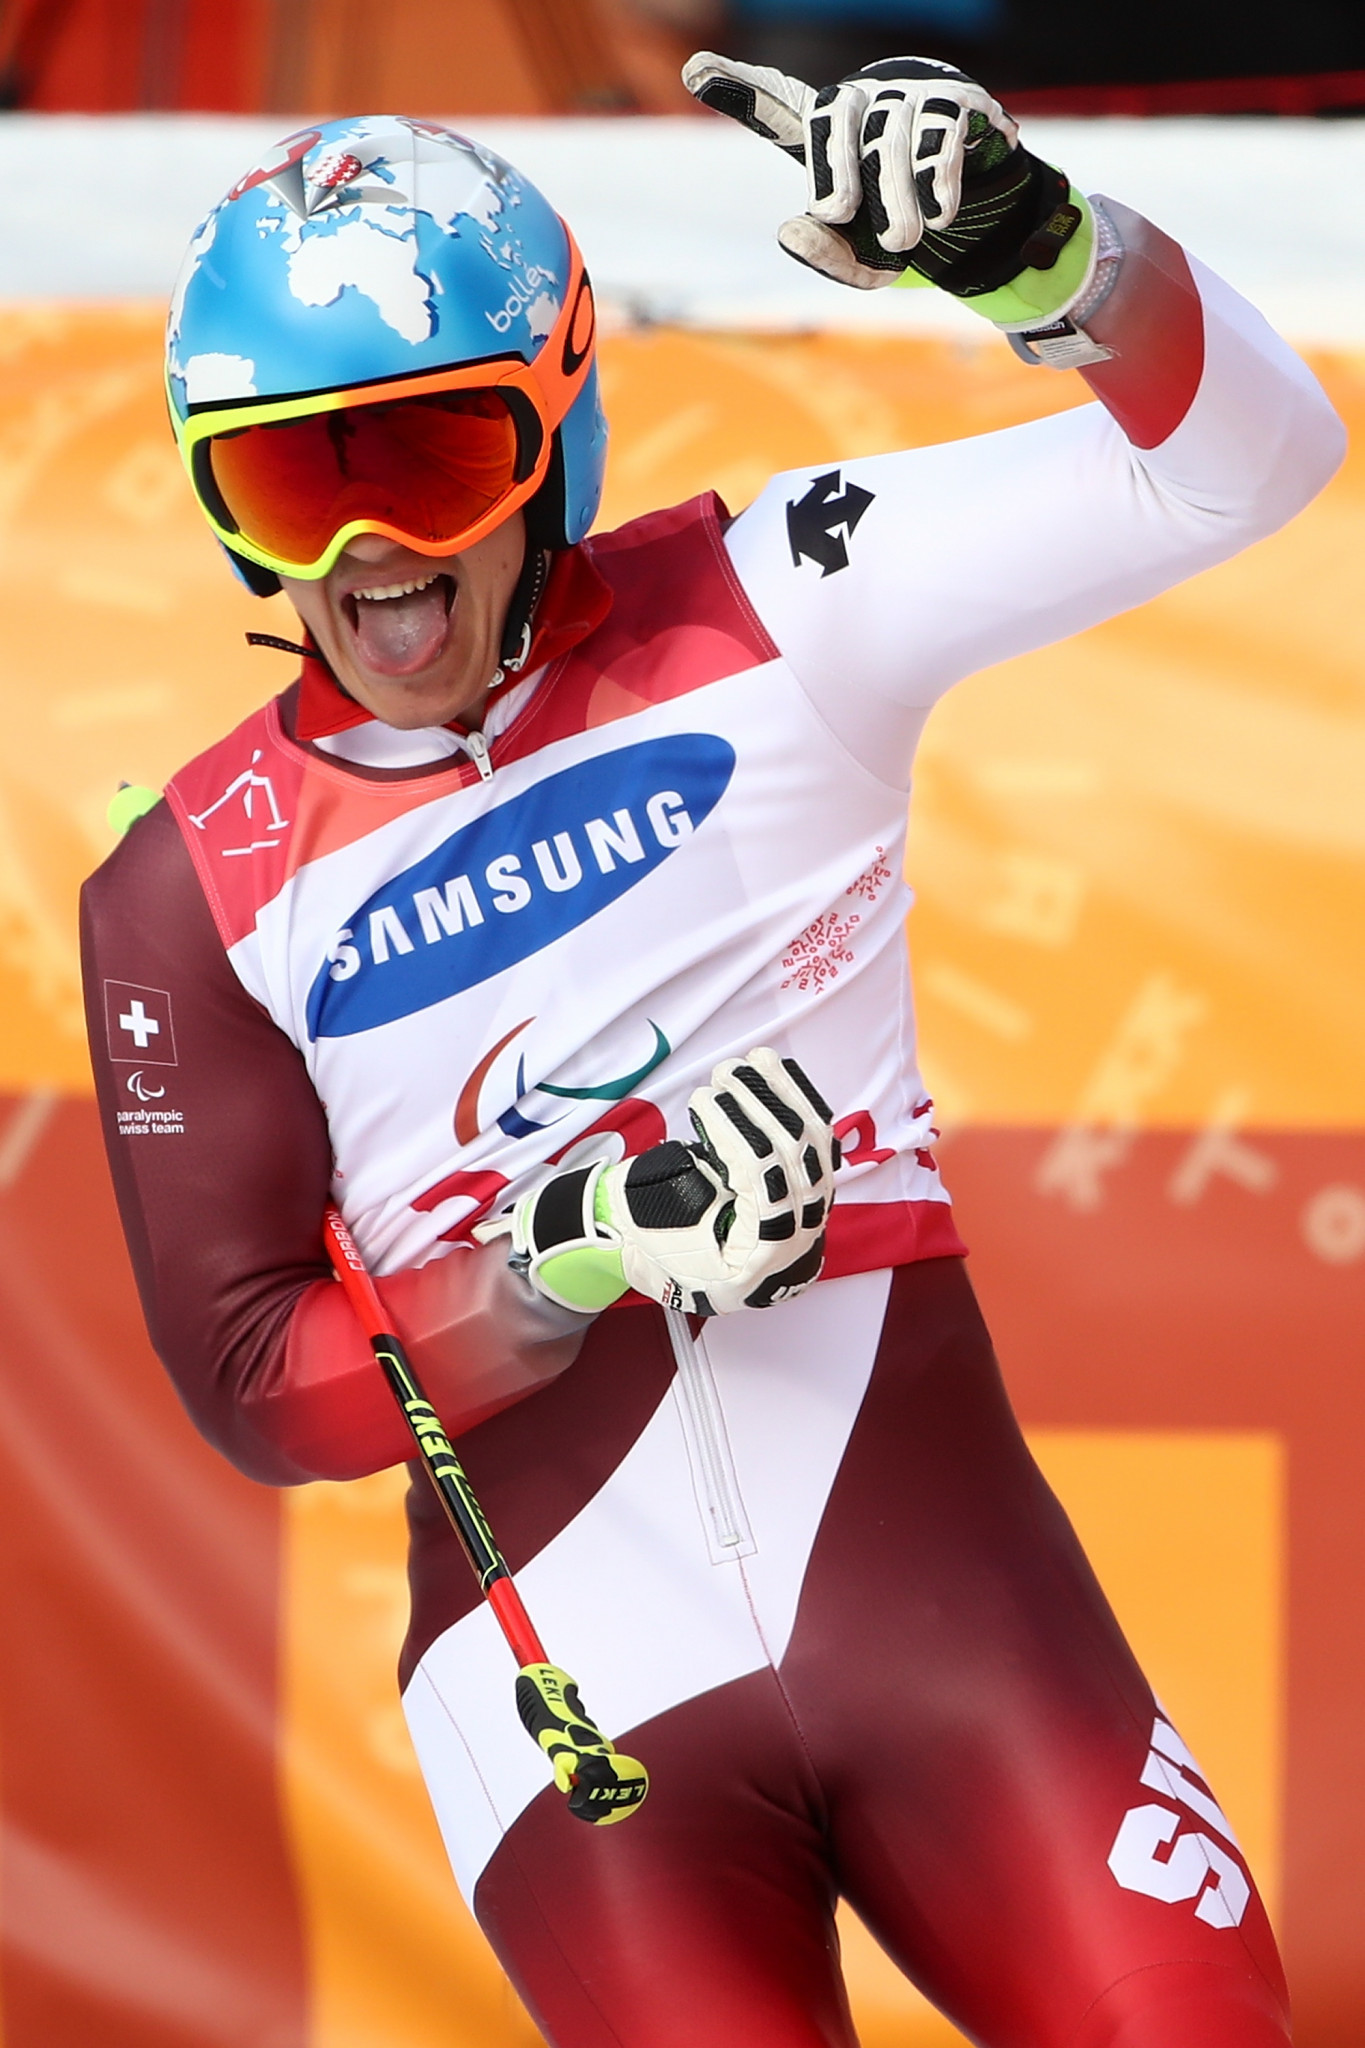 Third time golden for Gmur as he beats Bauchet at World Para Alpine Skiing World Cup in La Molina